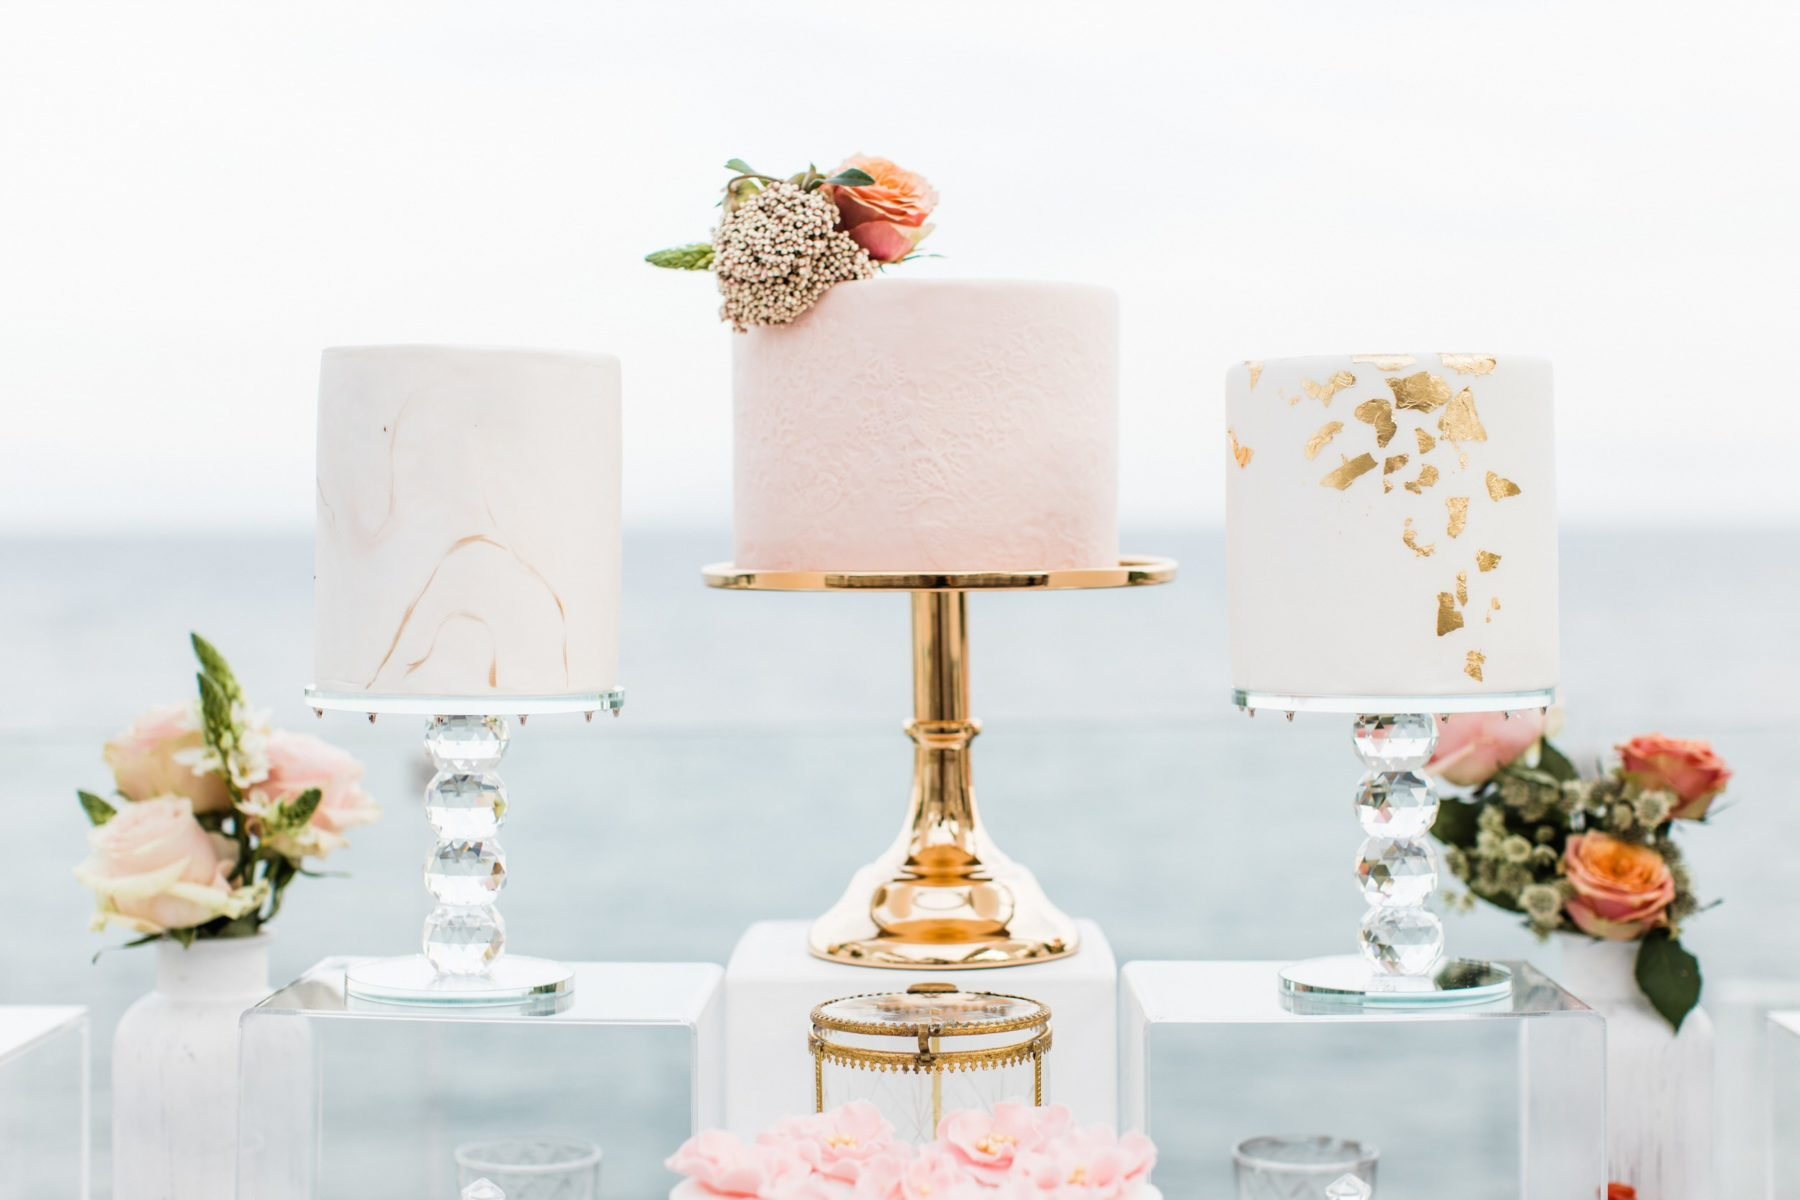 Catering Services Greece- Wedding Cakes Presentation